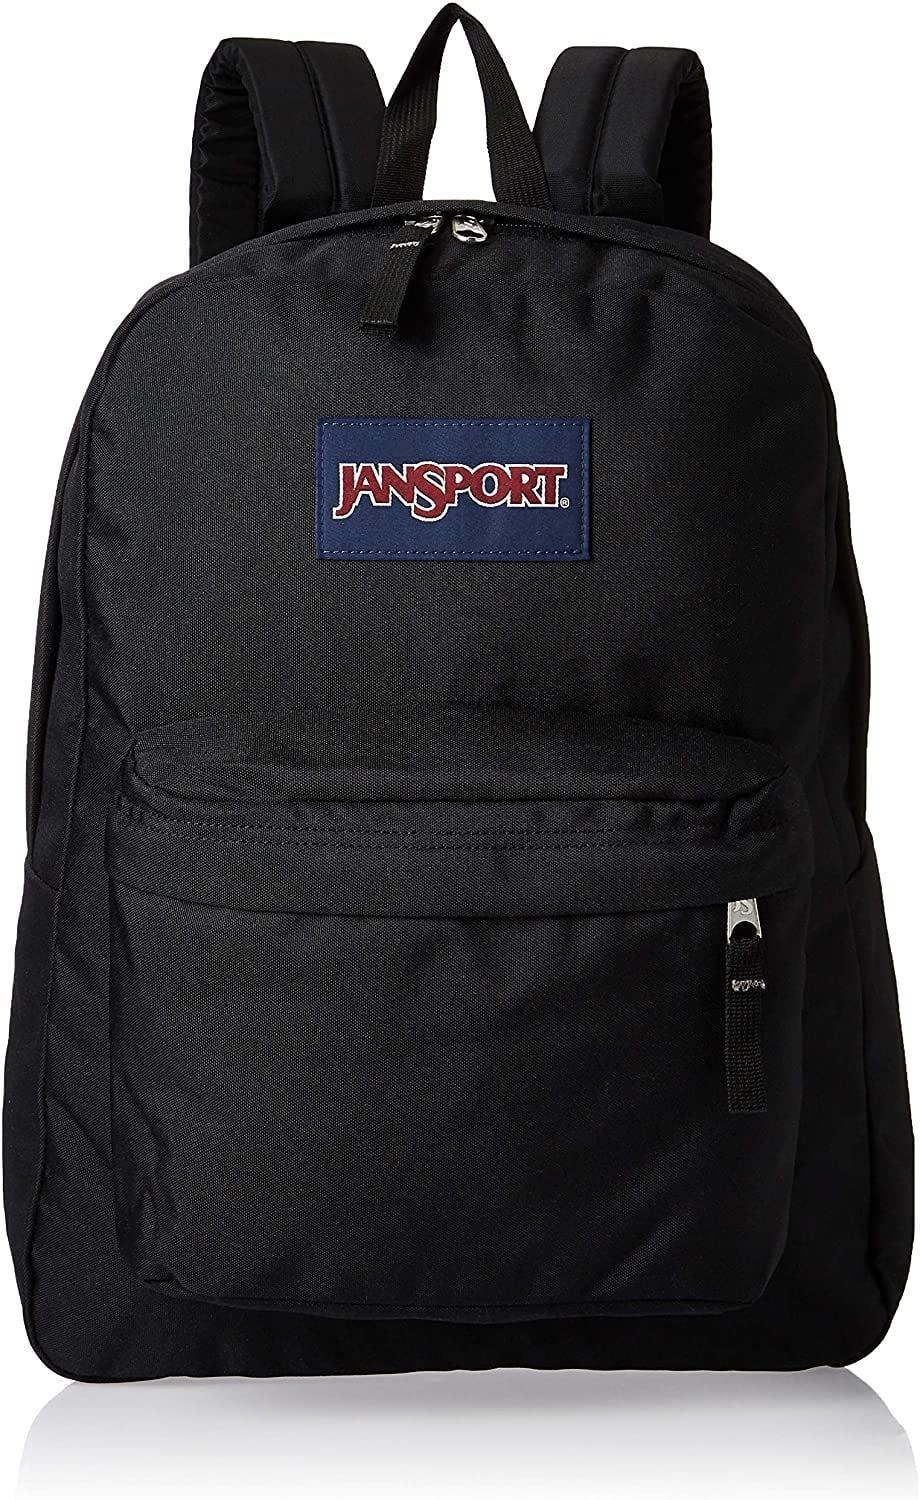 <p>This <span>JanSport SuperBreak One Backpack</span> ($60) is a reliable favorite. It has spacious storage in the main compartment, a front utility pocket with a built-in organizer, and a side water bottle pocket. It comes in a variety of colors as well!</p>